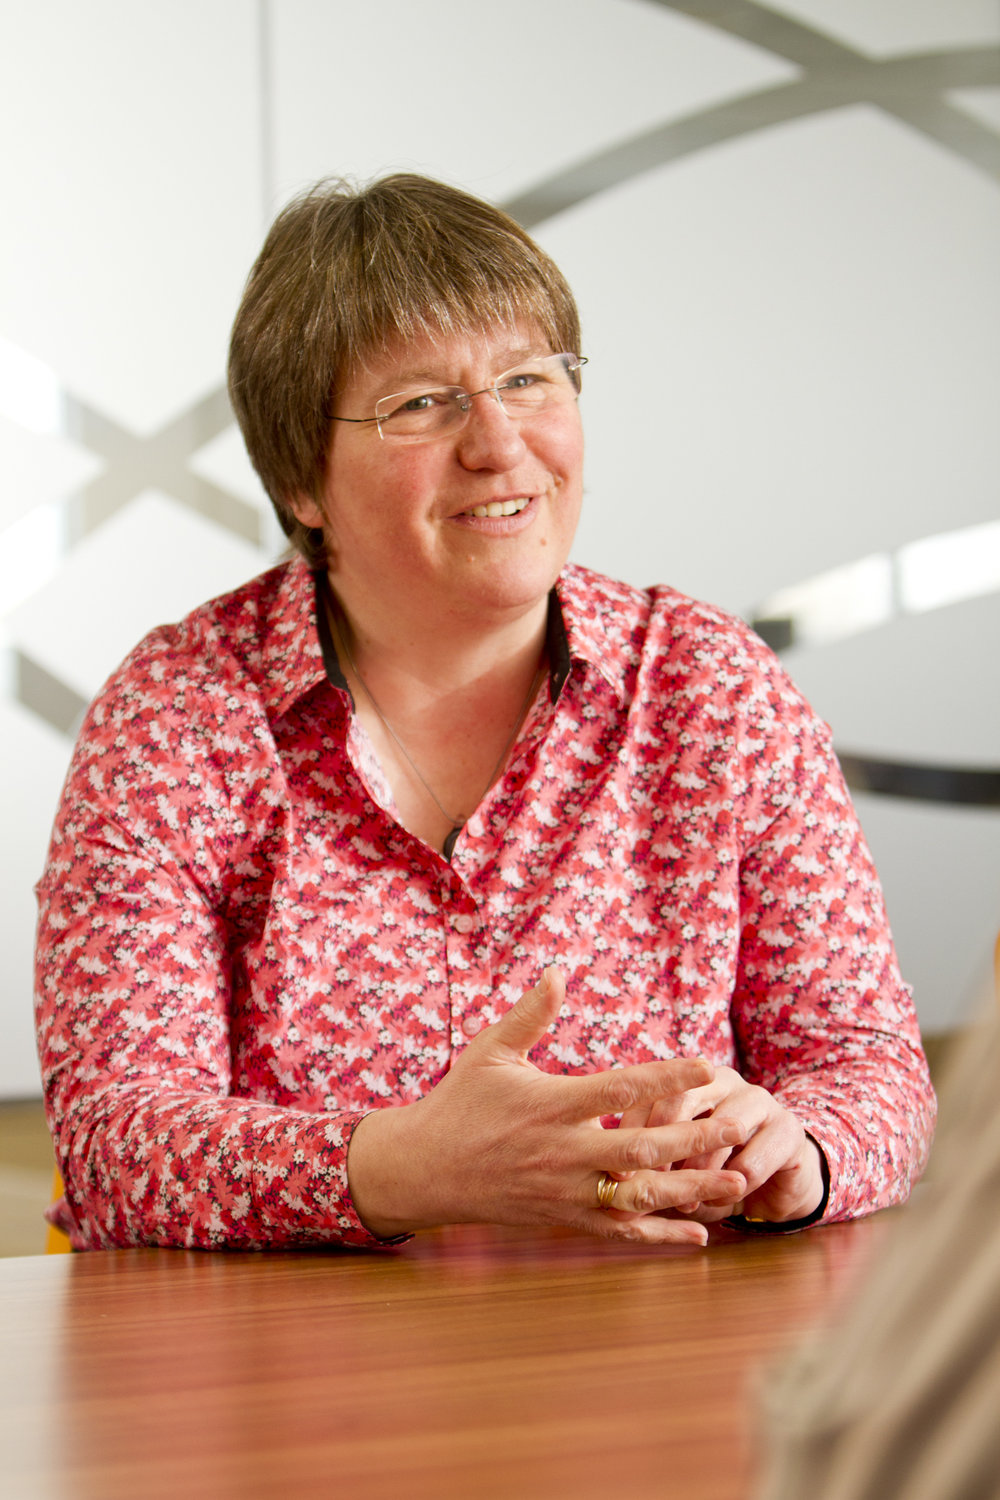 Lucy Armstrong is deputy chair of the North East Social Investment Company